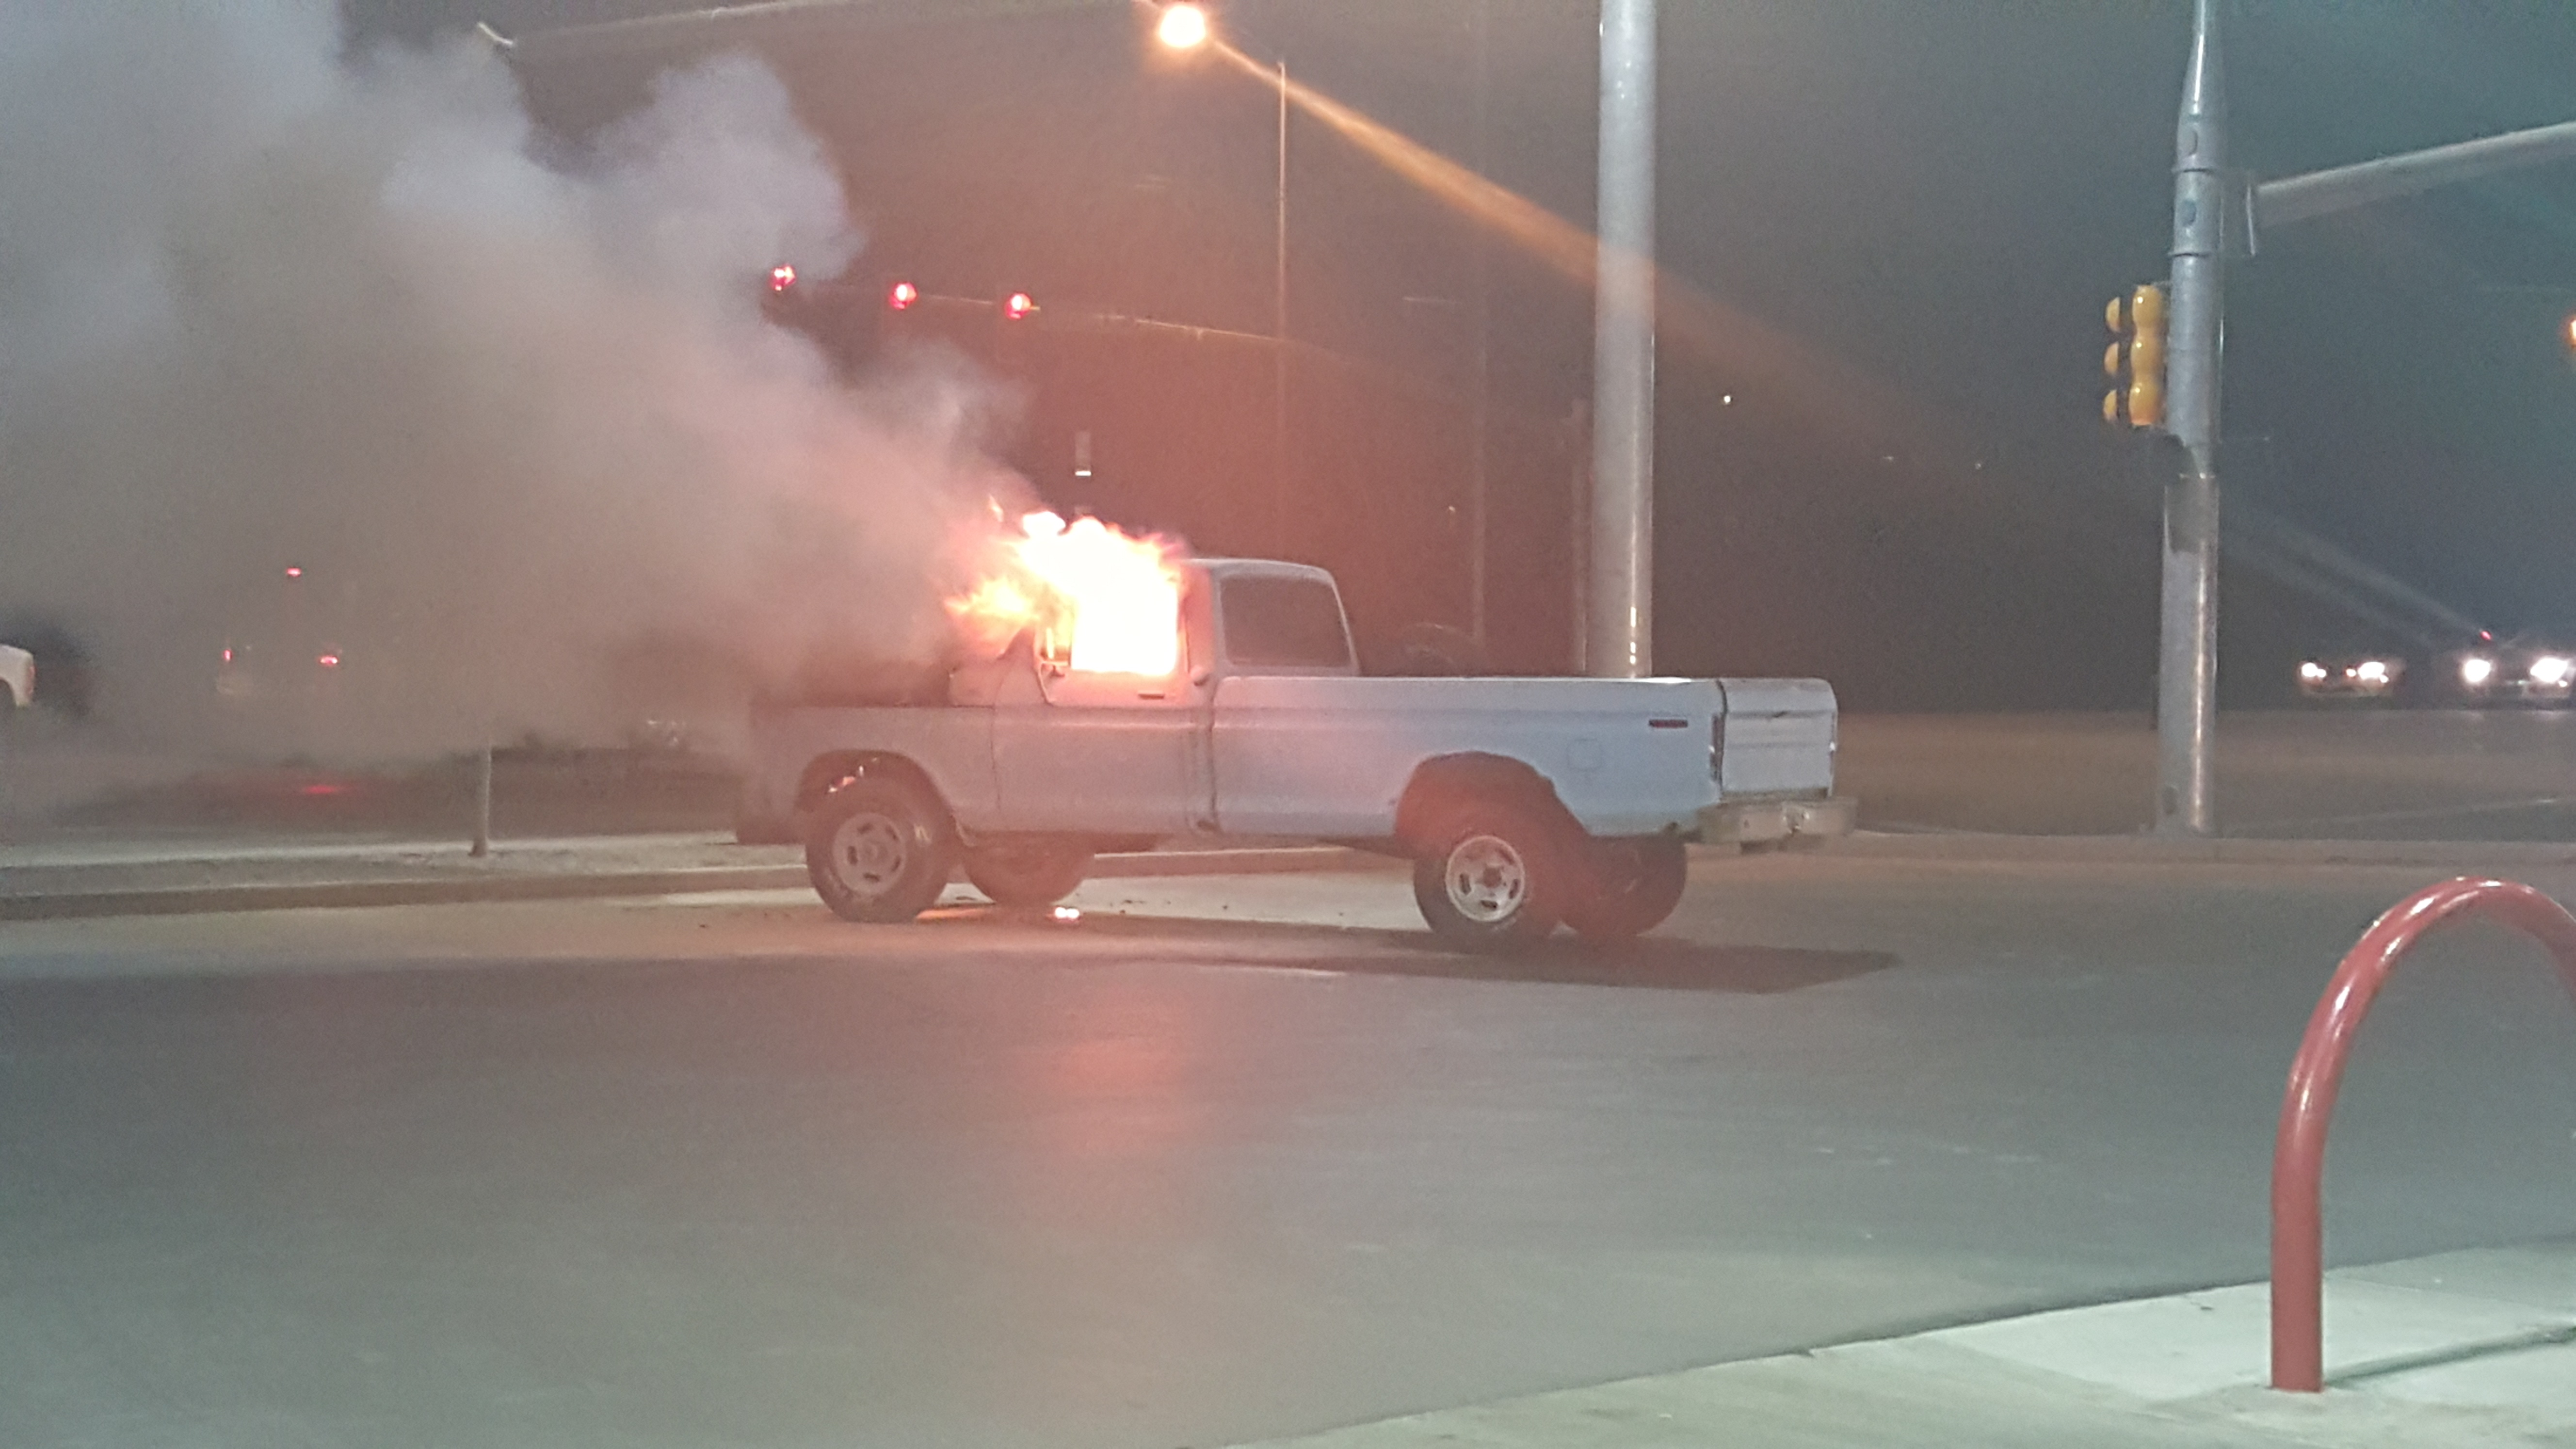 A truck in flames at the Maverik – Adventure's First Stop - convenience store at 2078 E. Riverside Drive, St. George, Utah, March 10 2016 | Photo courtesy of Cody Pitcher, St. George News